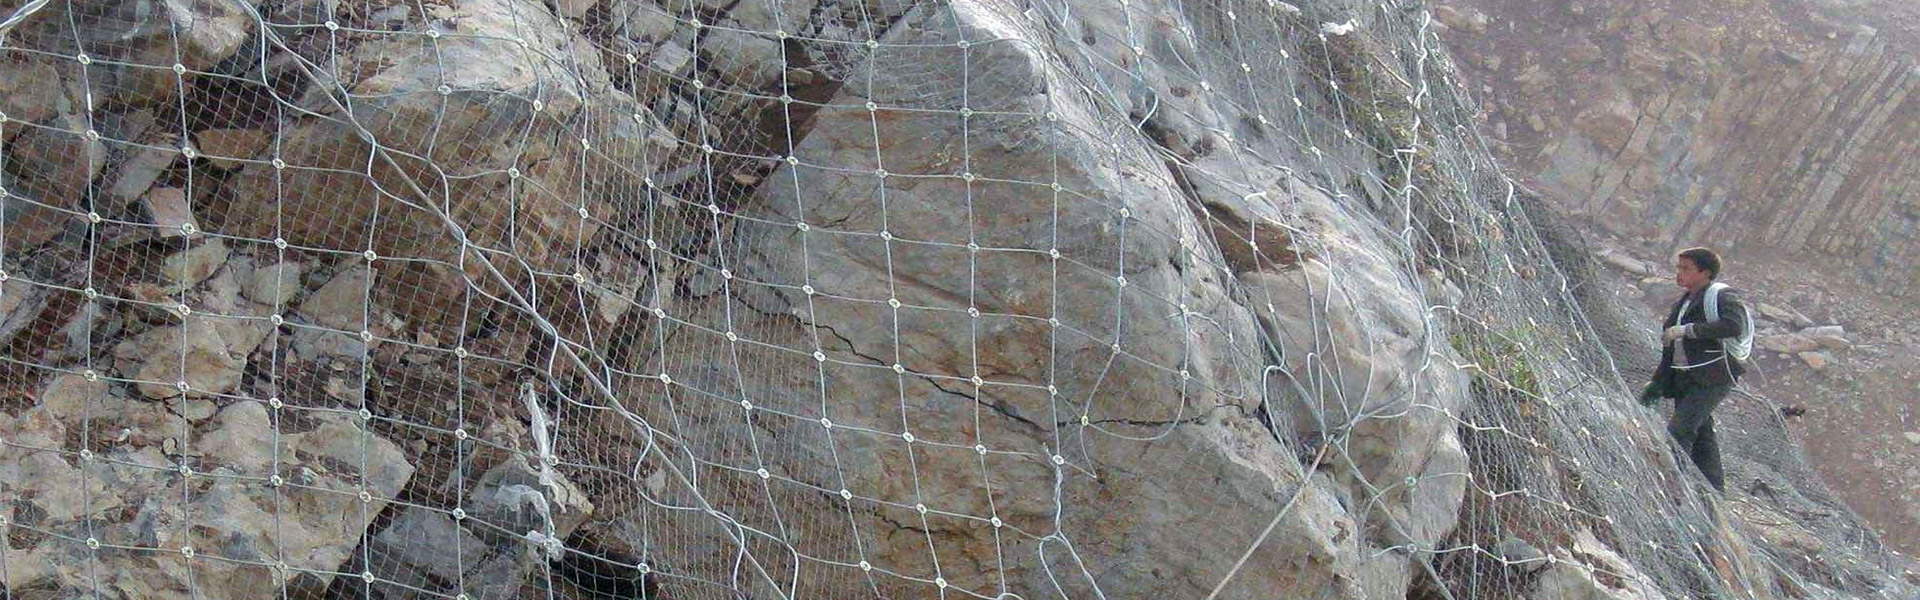 Flexible-Protective-Netting